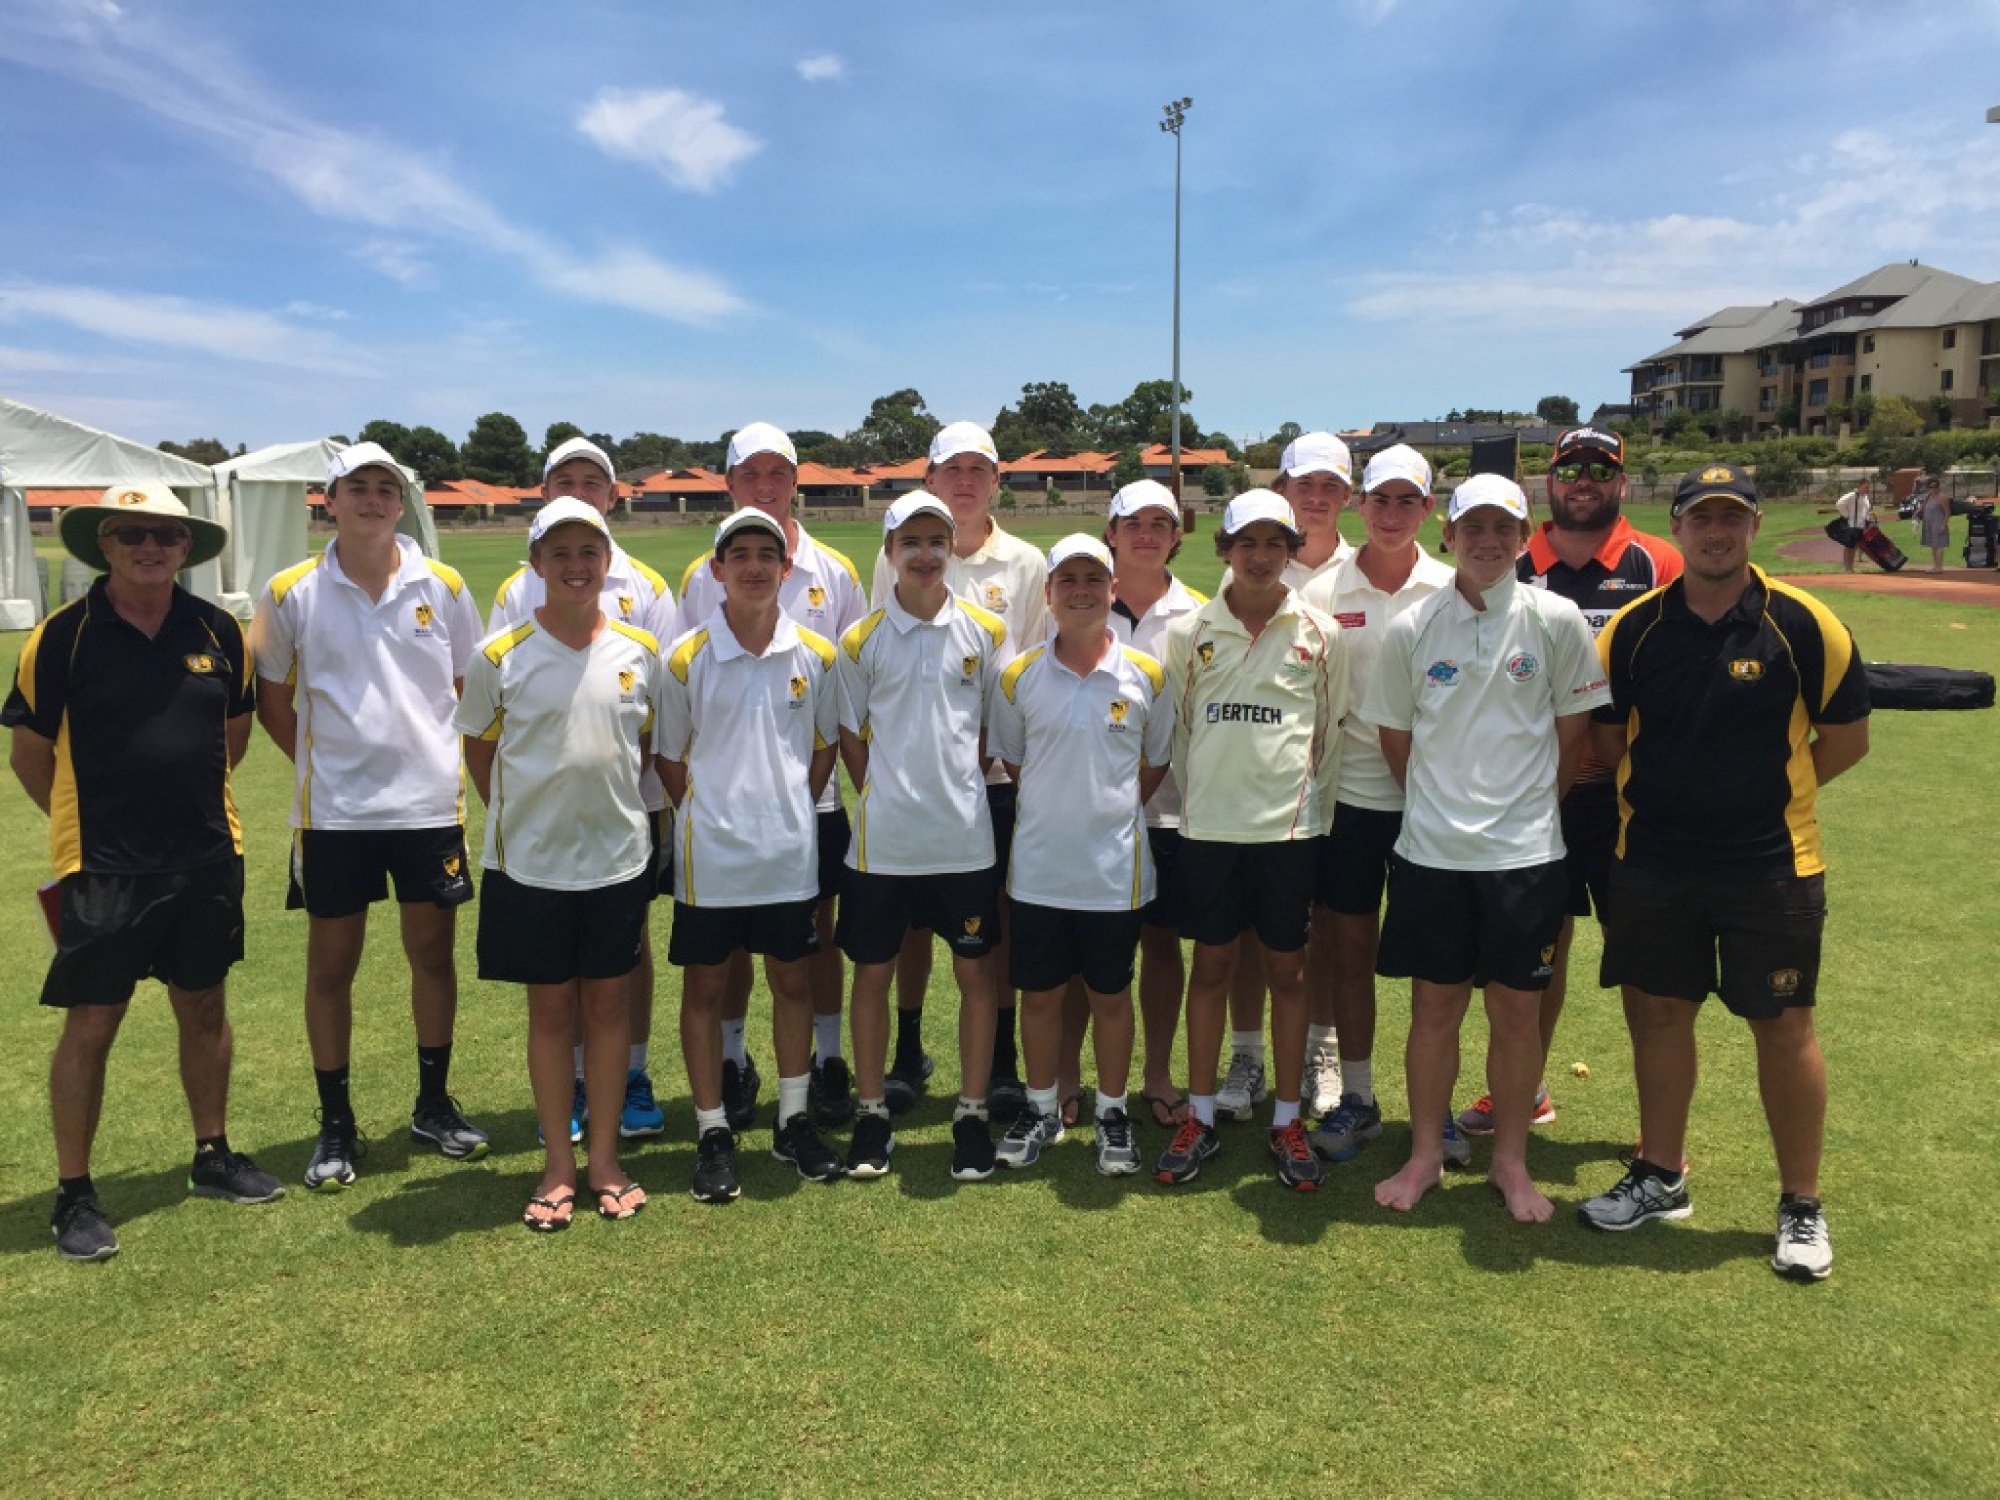 Back (from left): Manager Ian Bycroft, Jordan Clark, Connor Smith, Keegan Finn, Connor Chadwick, Jesse Messere, Damien Burrage, Lachlan Hardy and WACA  talent co-ordinator Rob Wass. Front: Jayden Goodwin, Brendan McPhee, Bayley Holman, Thomas Drake-Brockman, Dean Billington, Ryleigh Cameron and coach Scott Ogilvie.